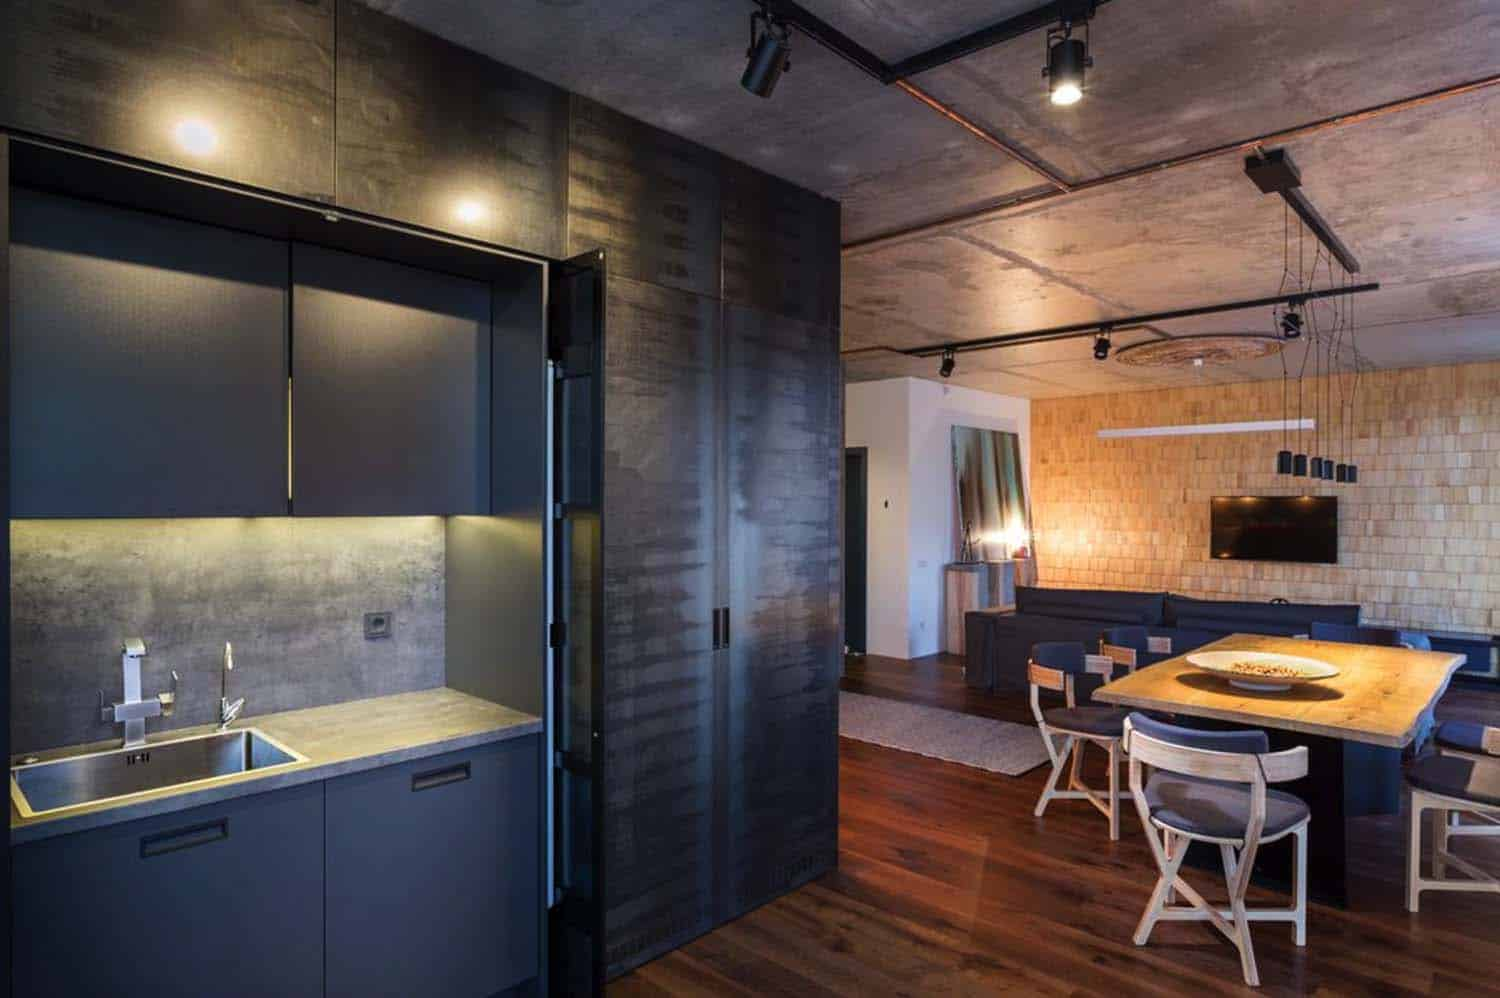 Two-Roomed Apartment-Svoya Studio-11-1 Kindesign